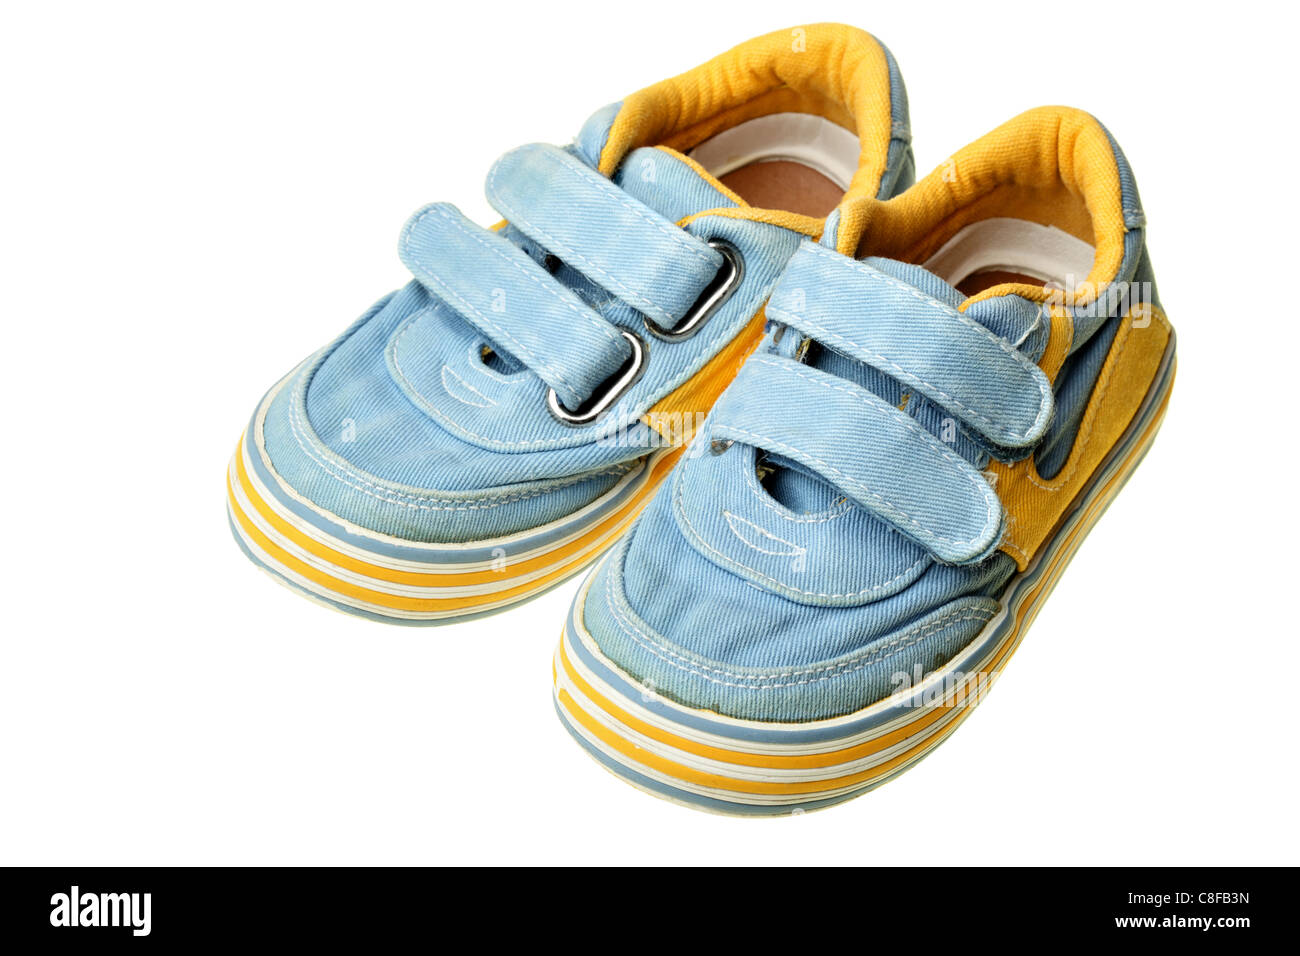 Children's shoes isolated over the white background - Stock Image